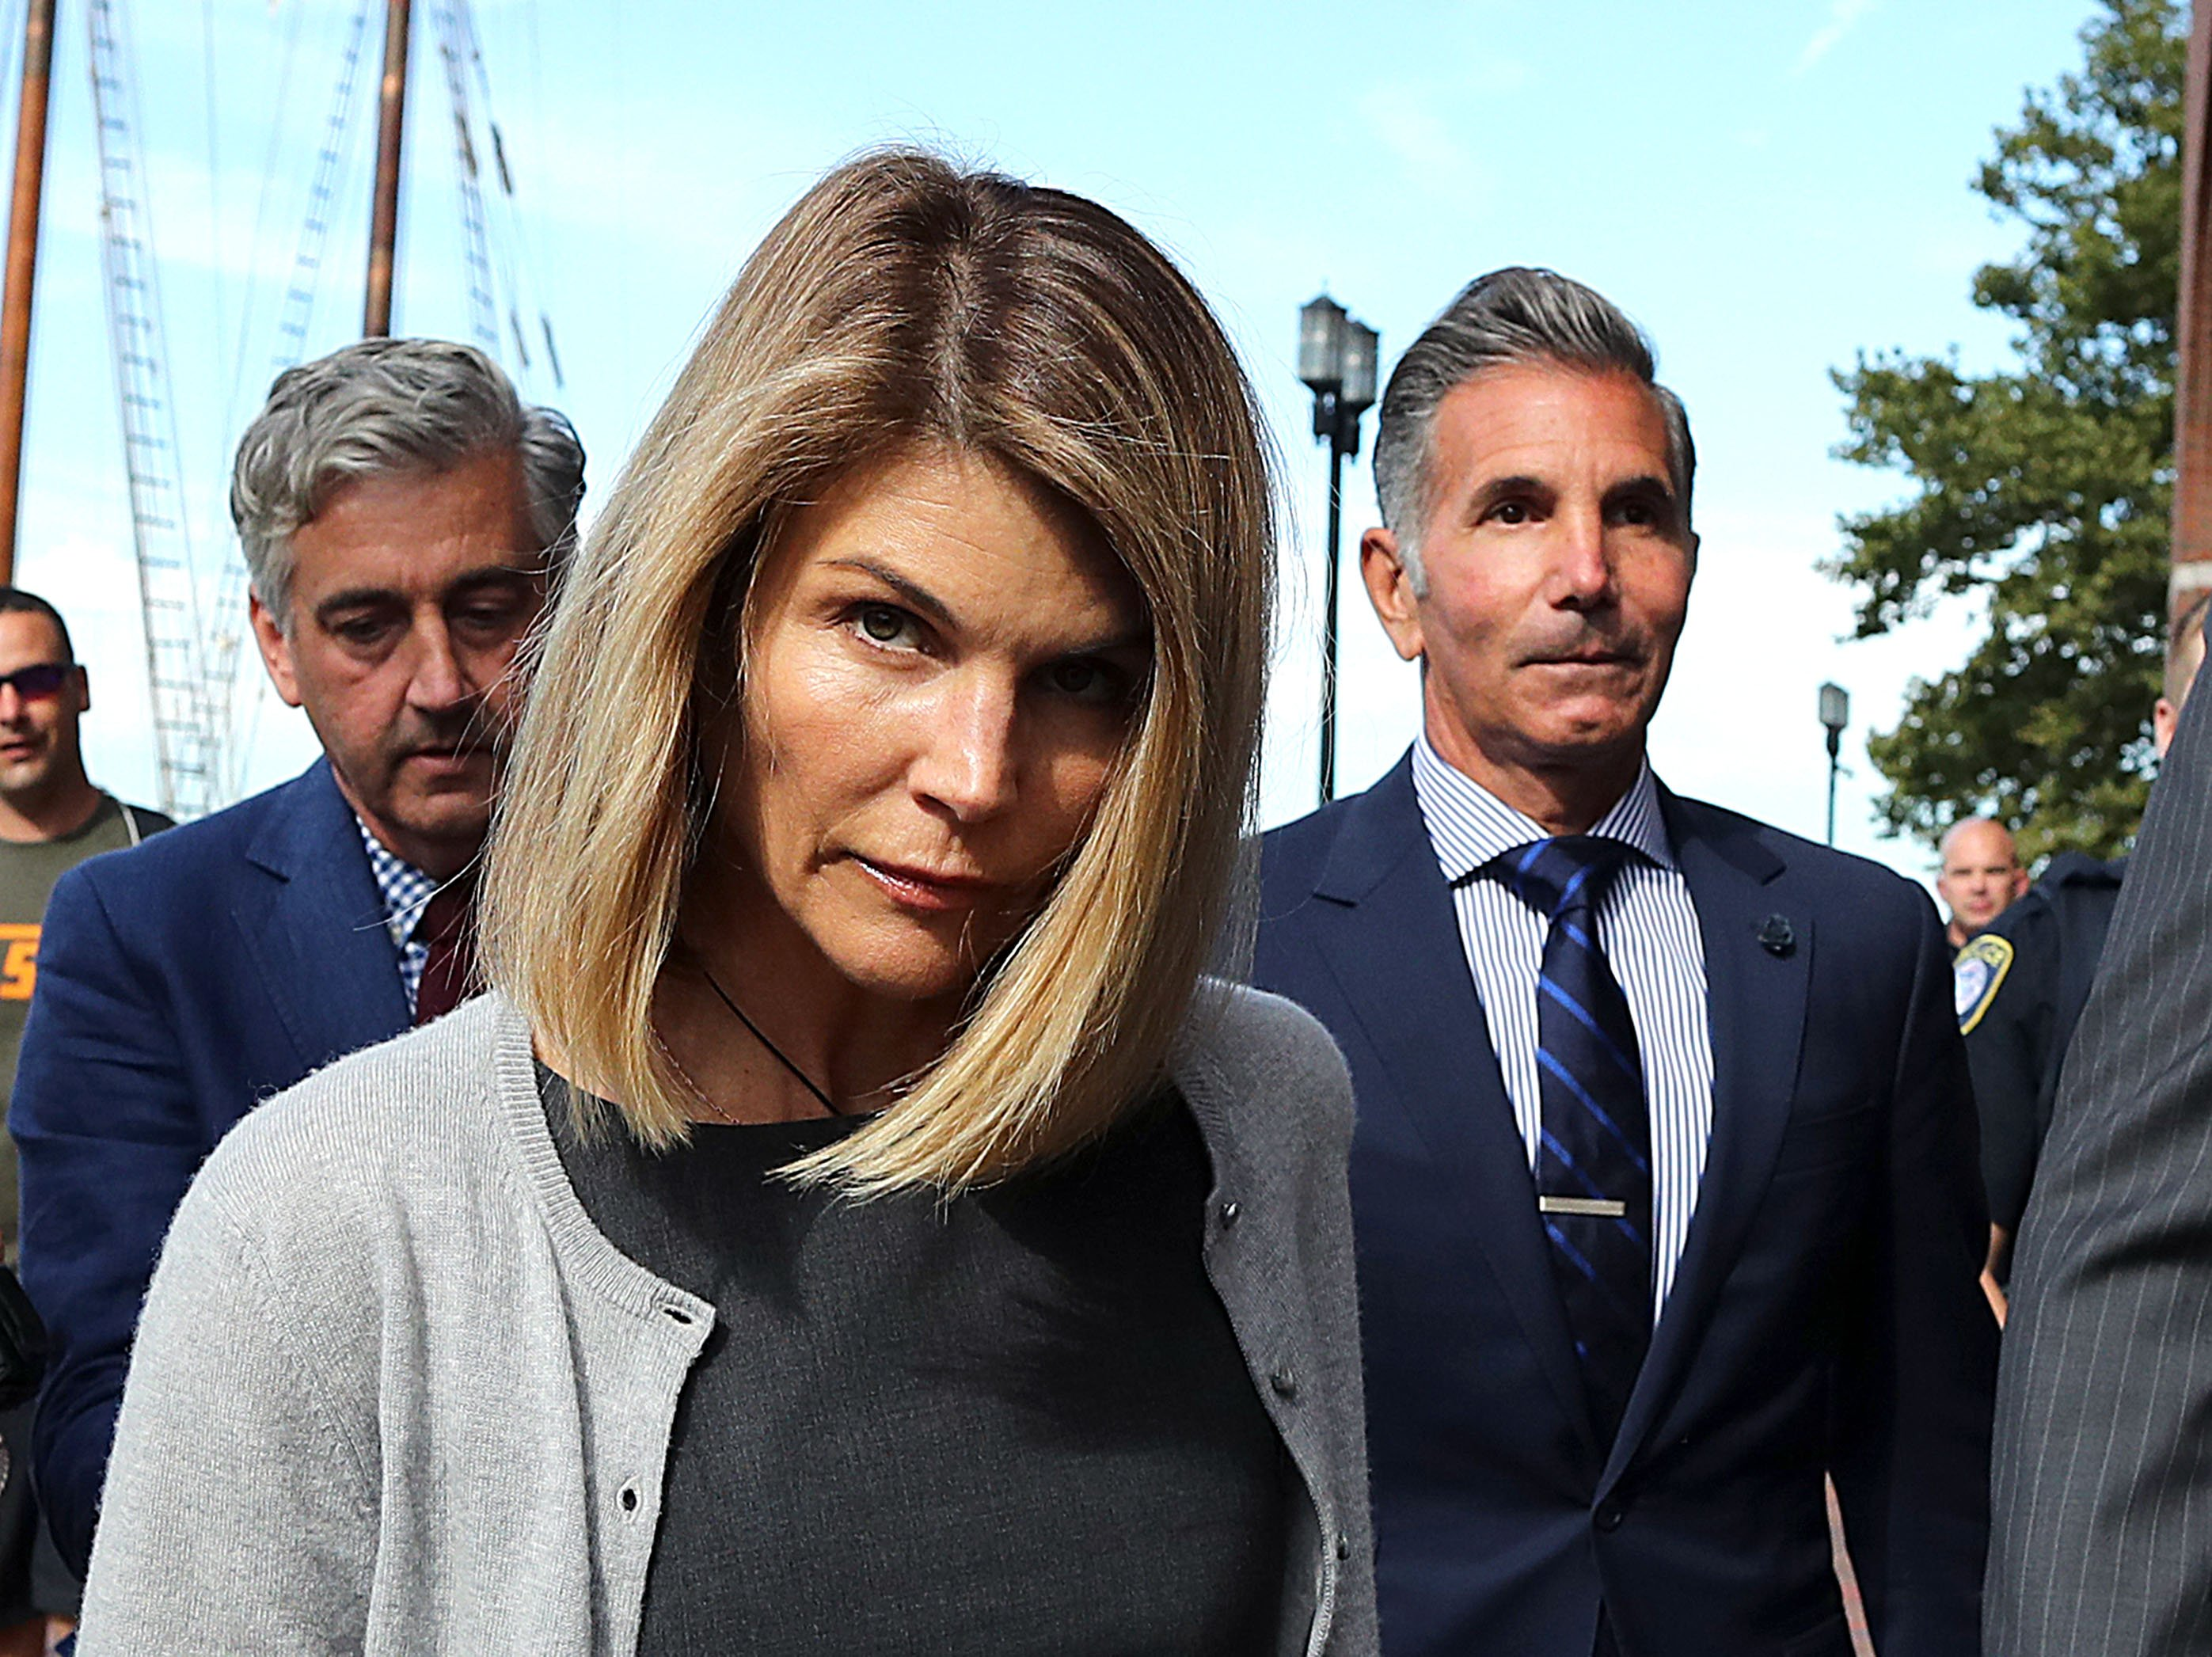 Lori Loughlin and husband Mossimo Giannulli leave a Boston courthouse on August 27, 2019 | Photo: Getty Images